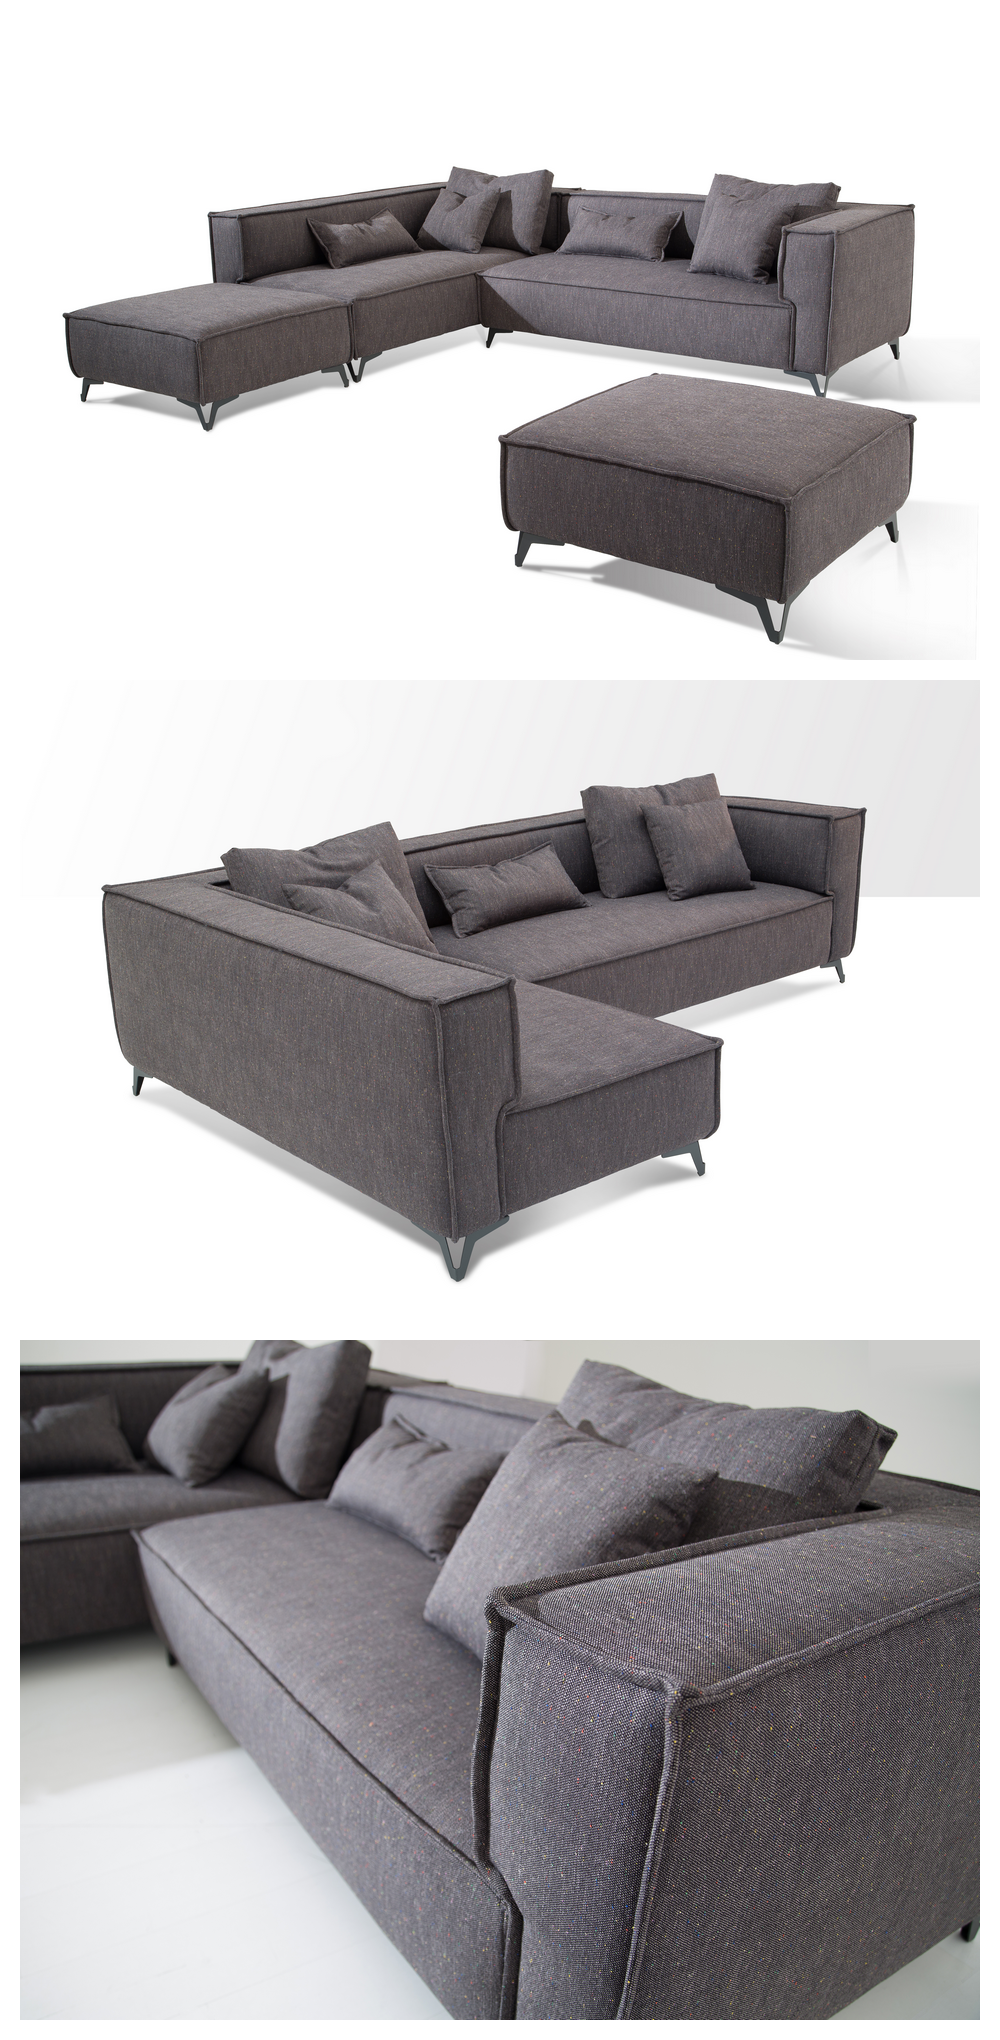 Grey Linen Armrest China Supplier Simple Sectional Sofa Pinterest And Furniture